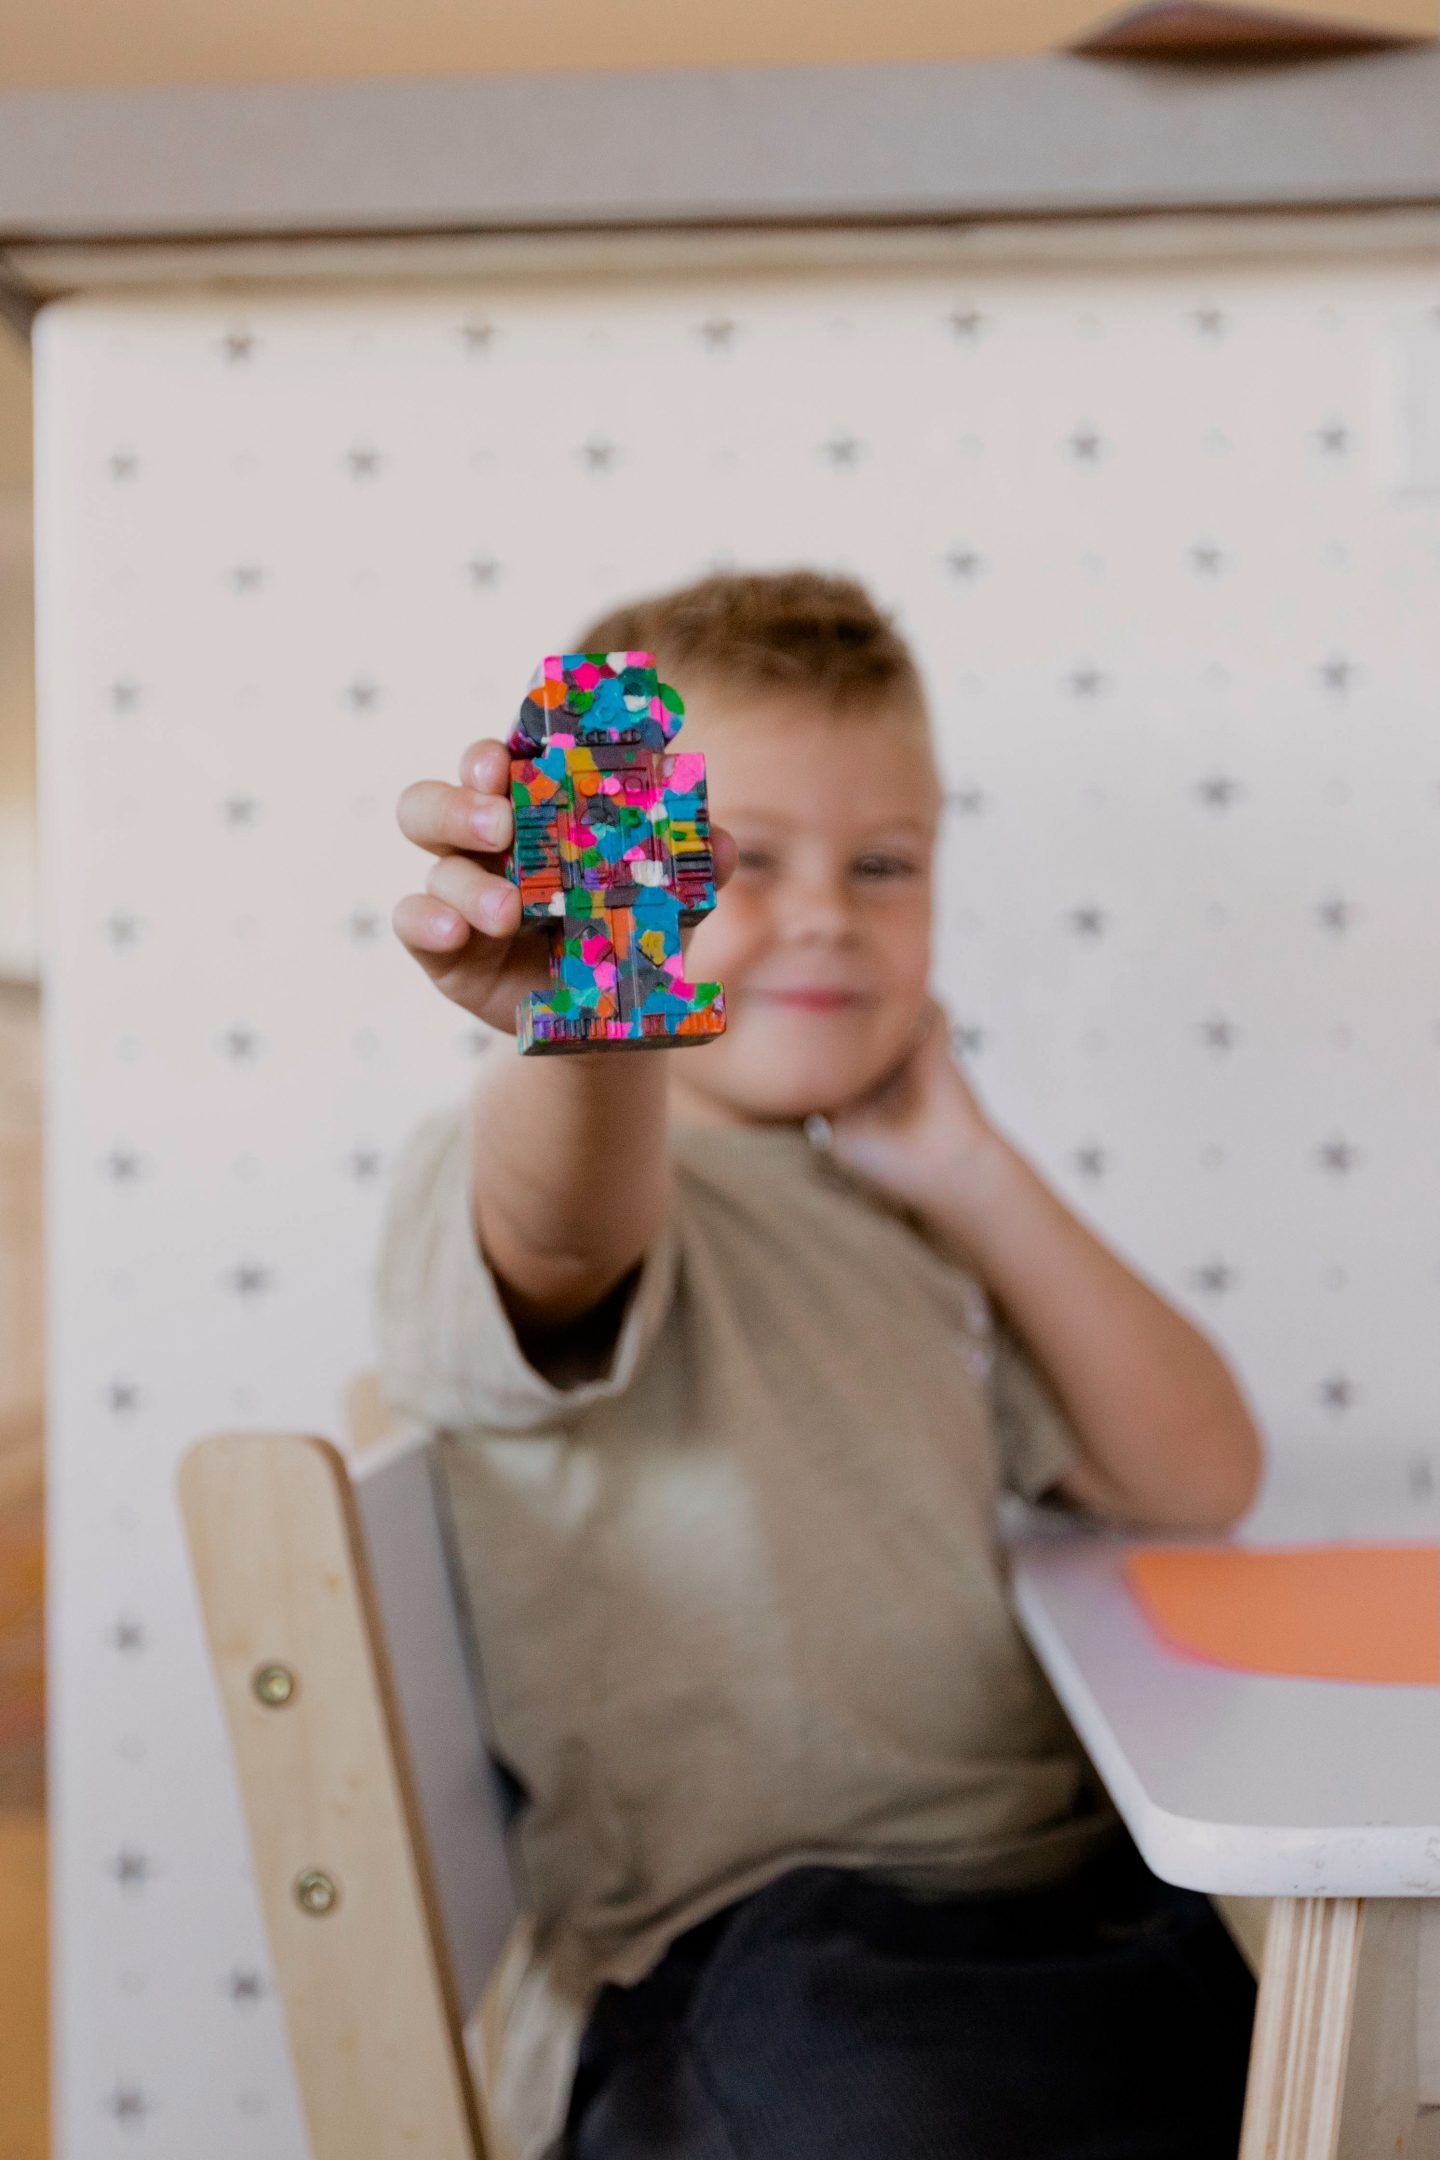 kid holding a painted robot toy